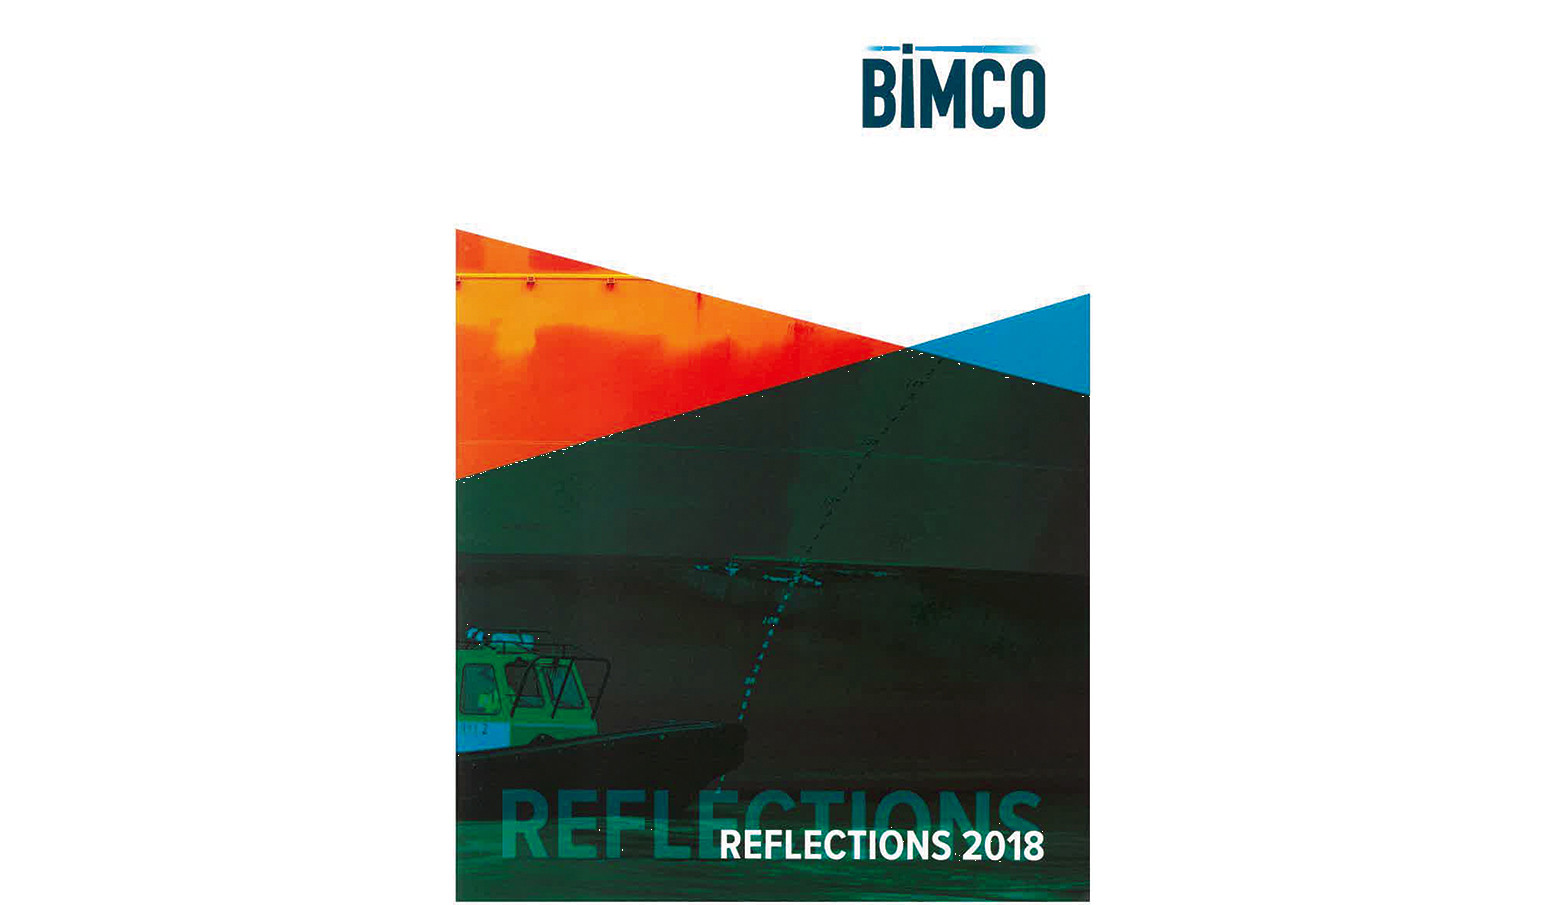 Reflections bimco